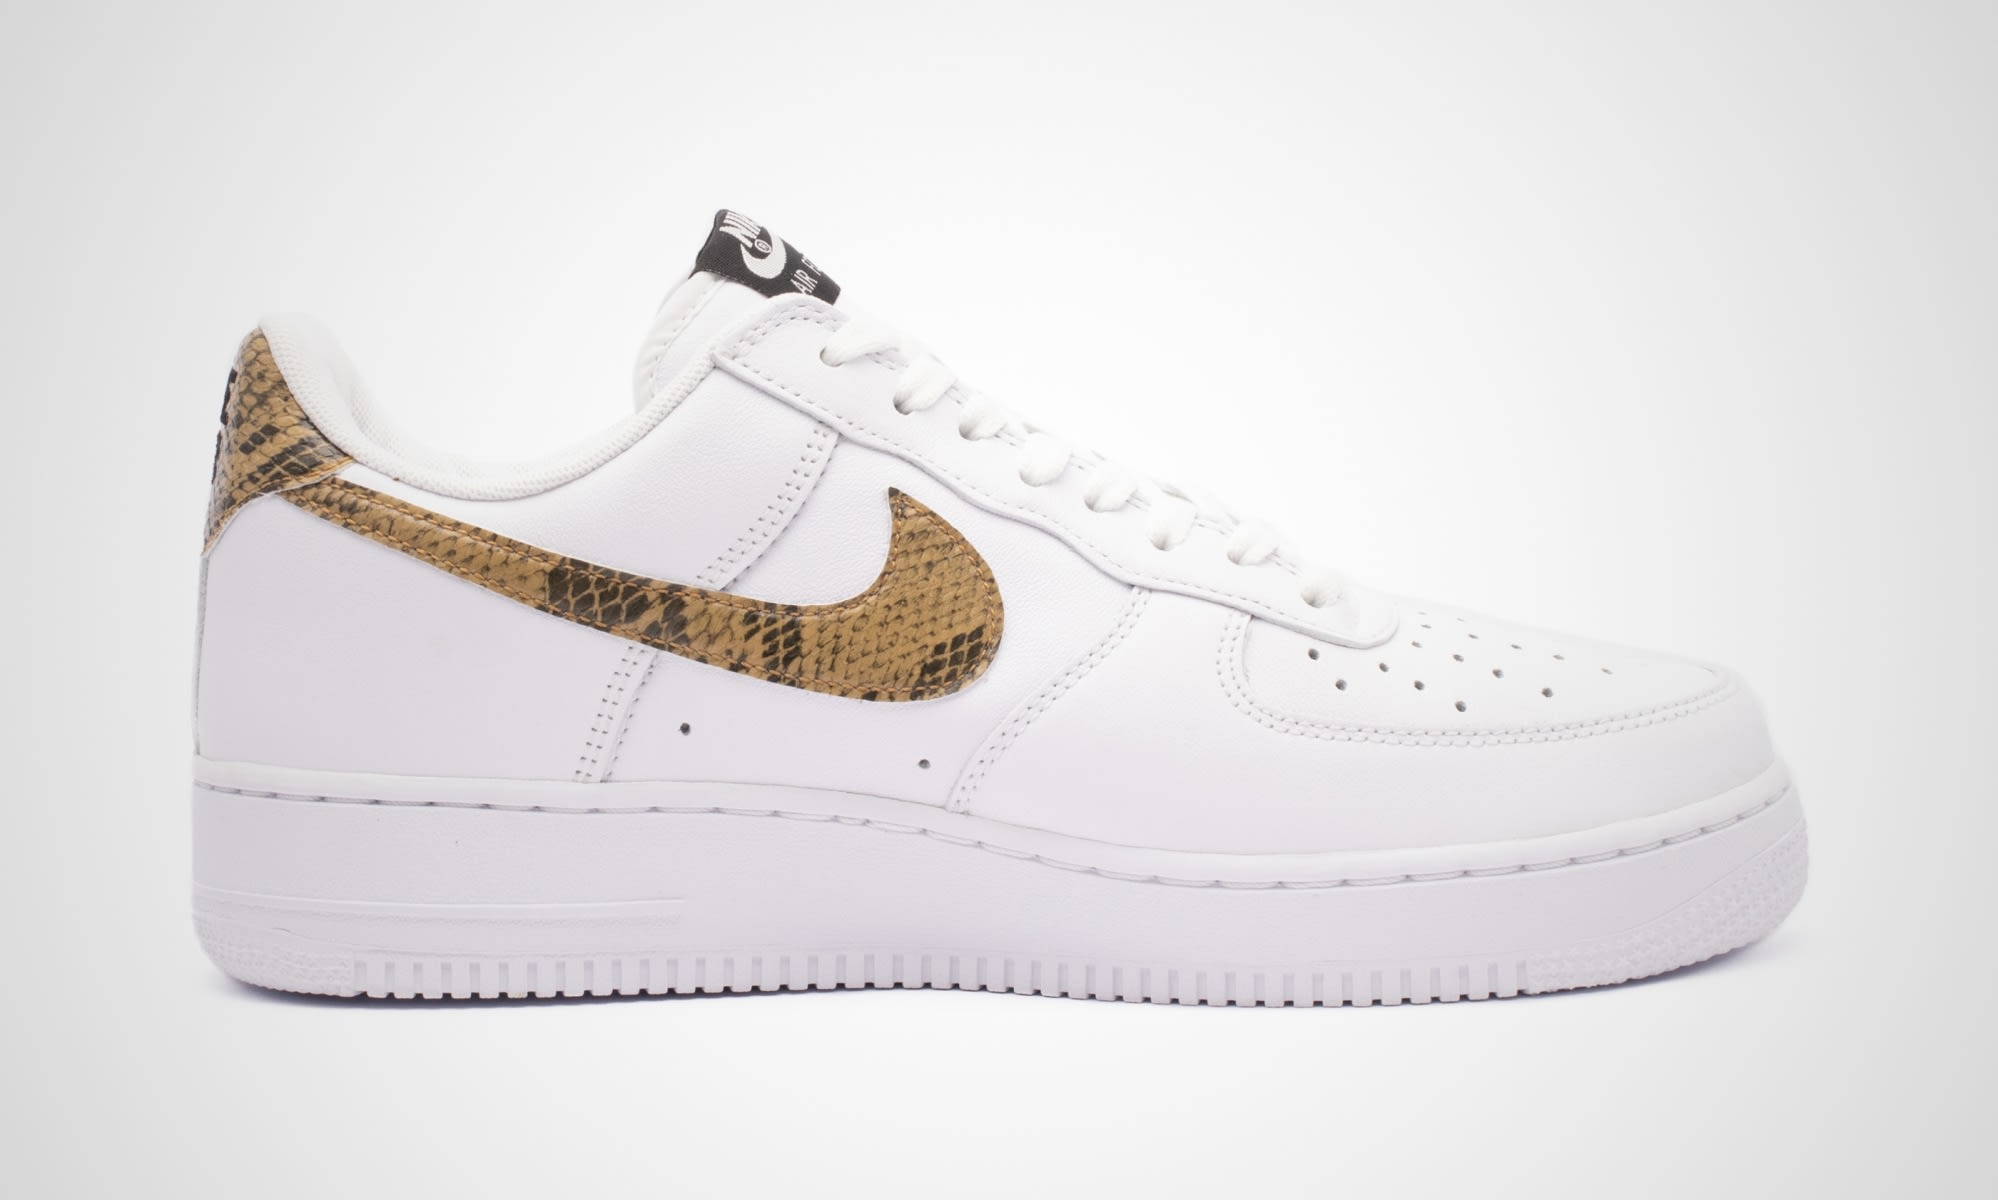 Nike Air Force 1 Low 'Ivory Snake' AO1635-100 (Medial)